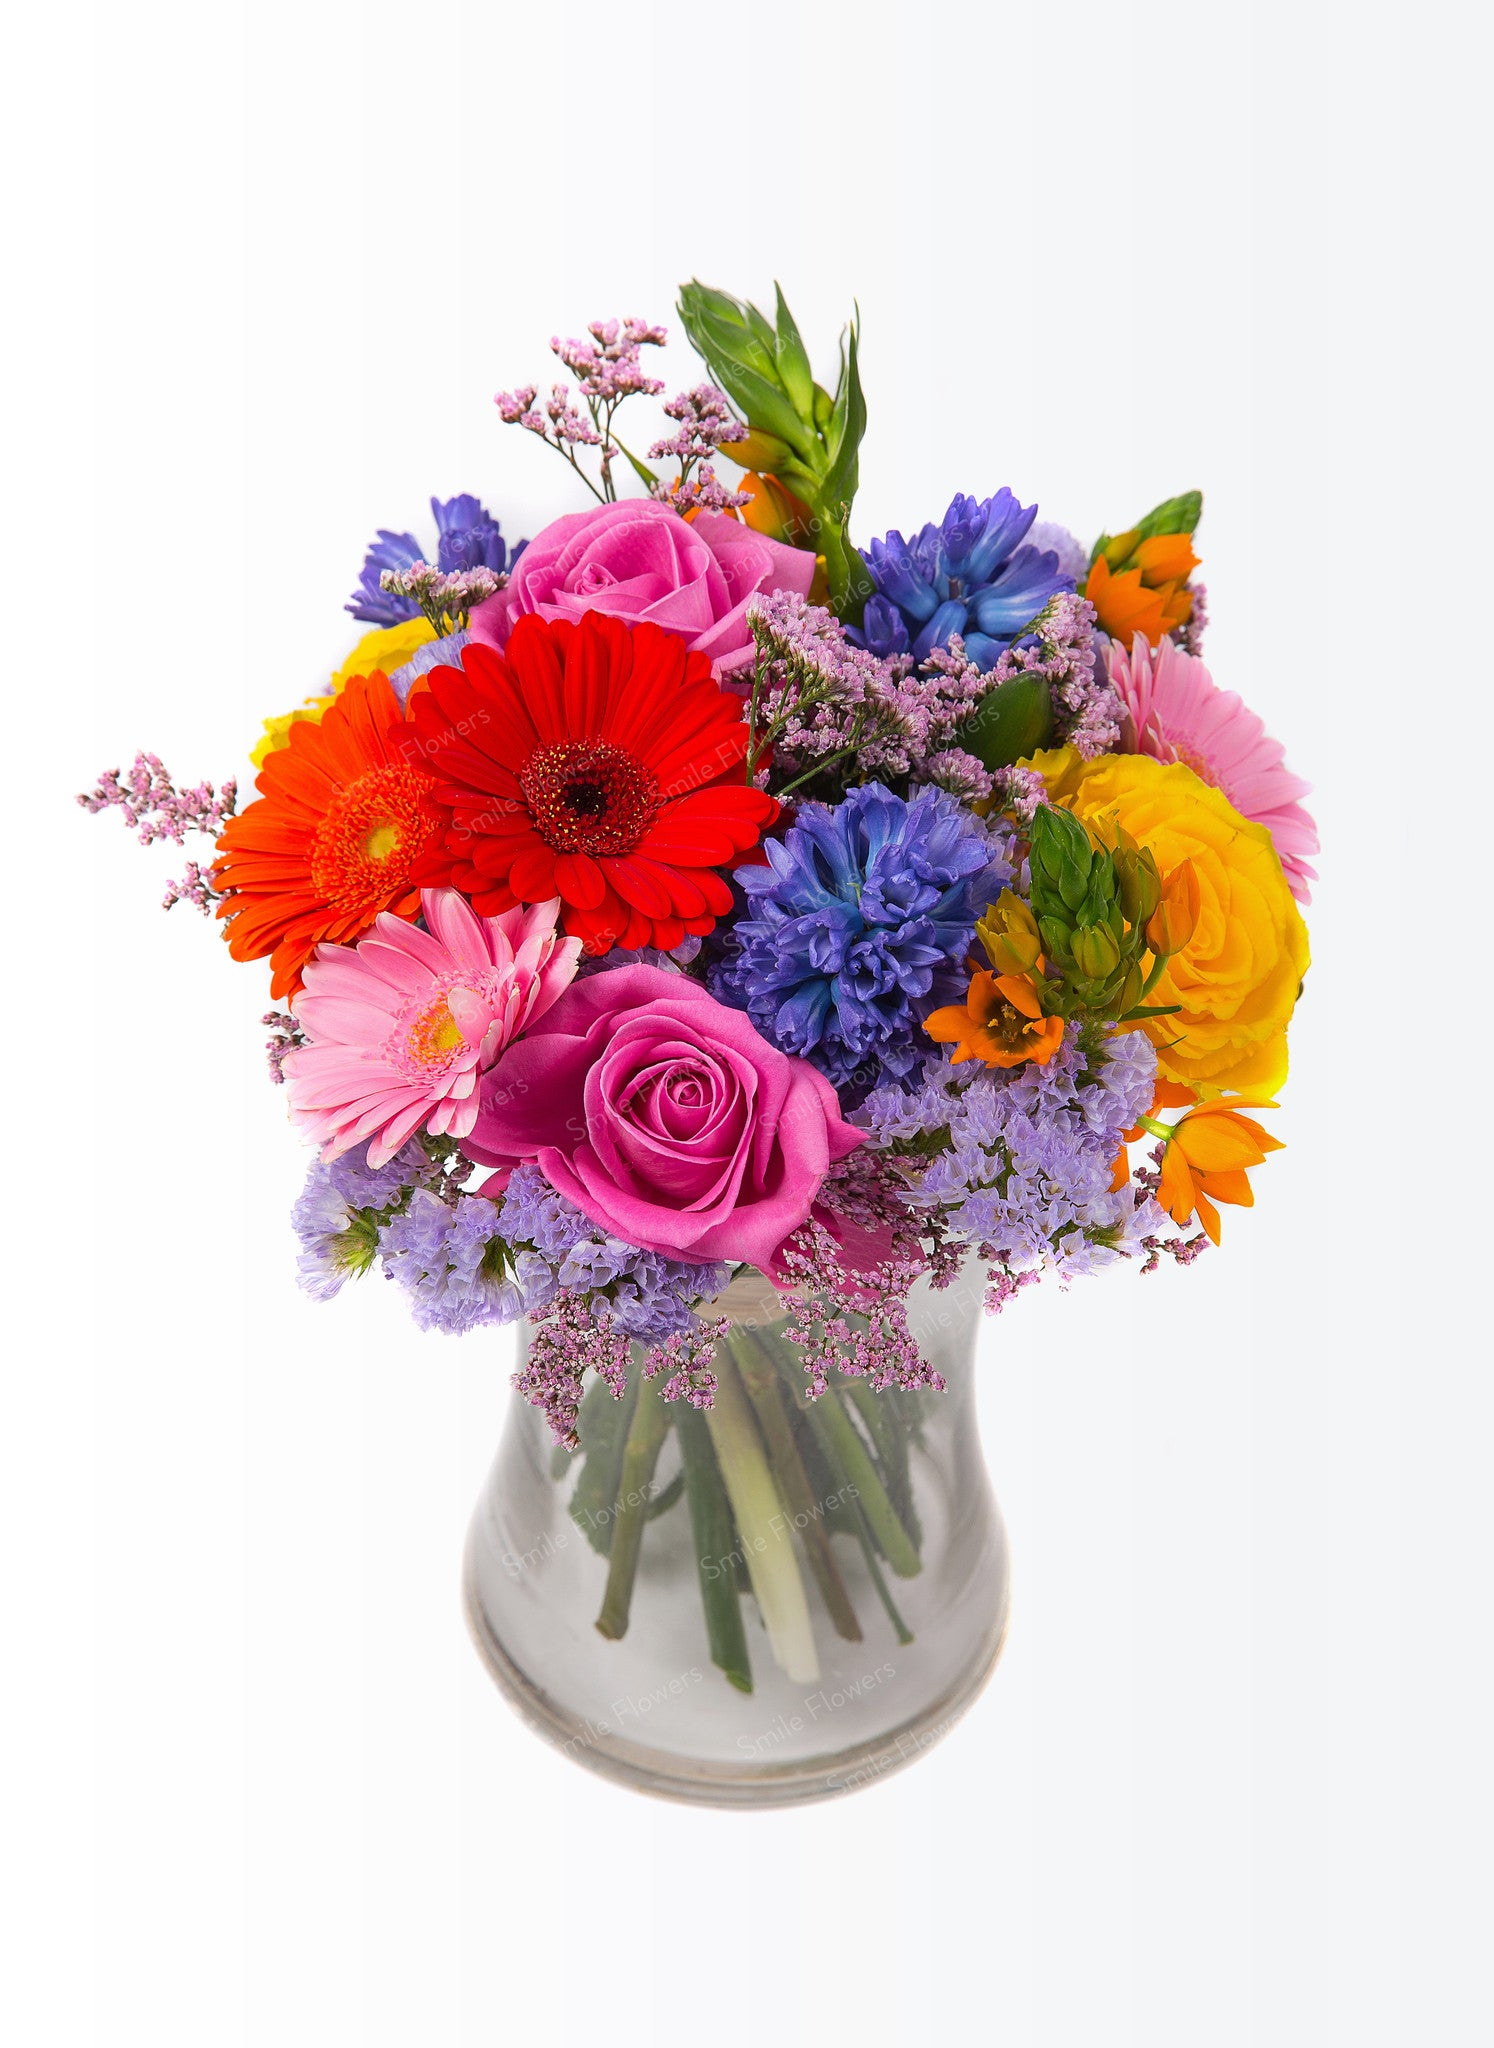 A bouquet of bright coloured flowers send flowers riga a bouquet of bright coloured flowers izmirmasajfo